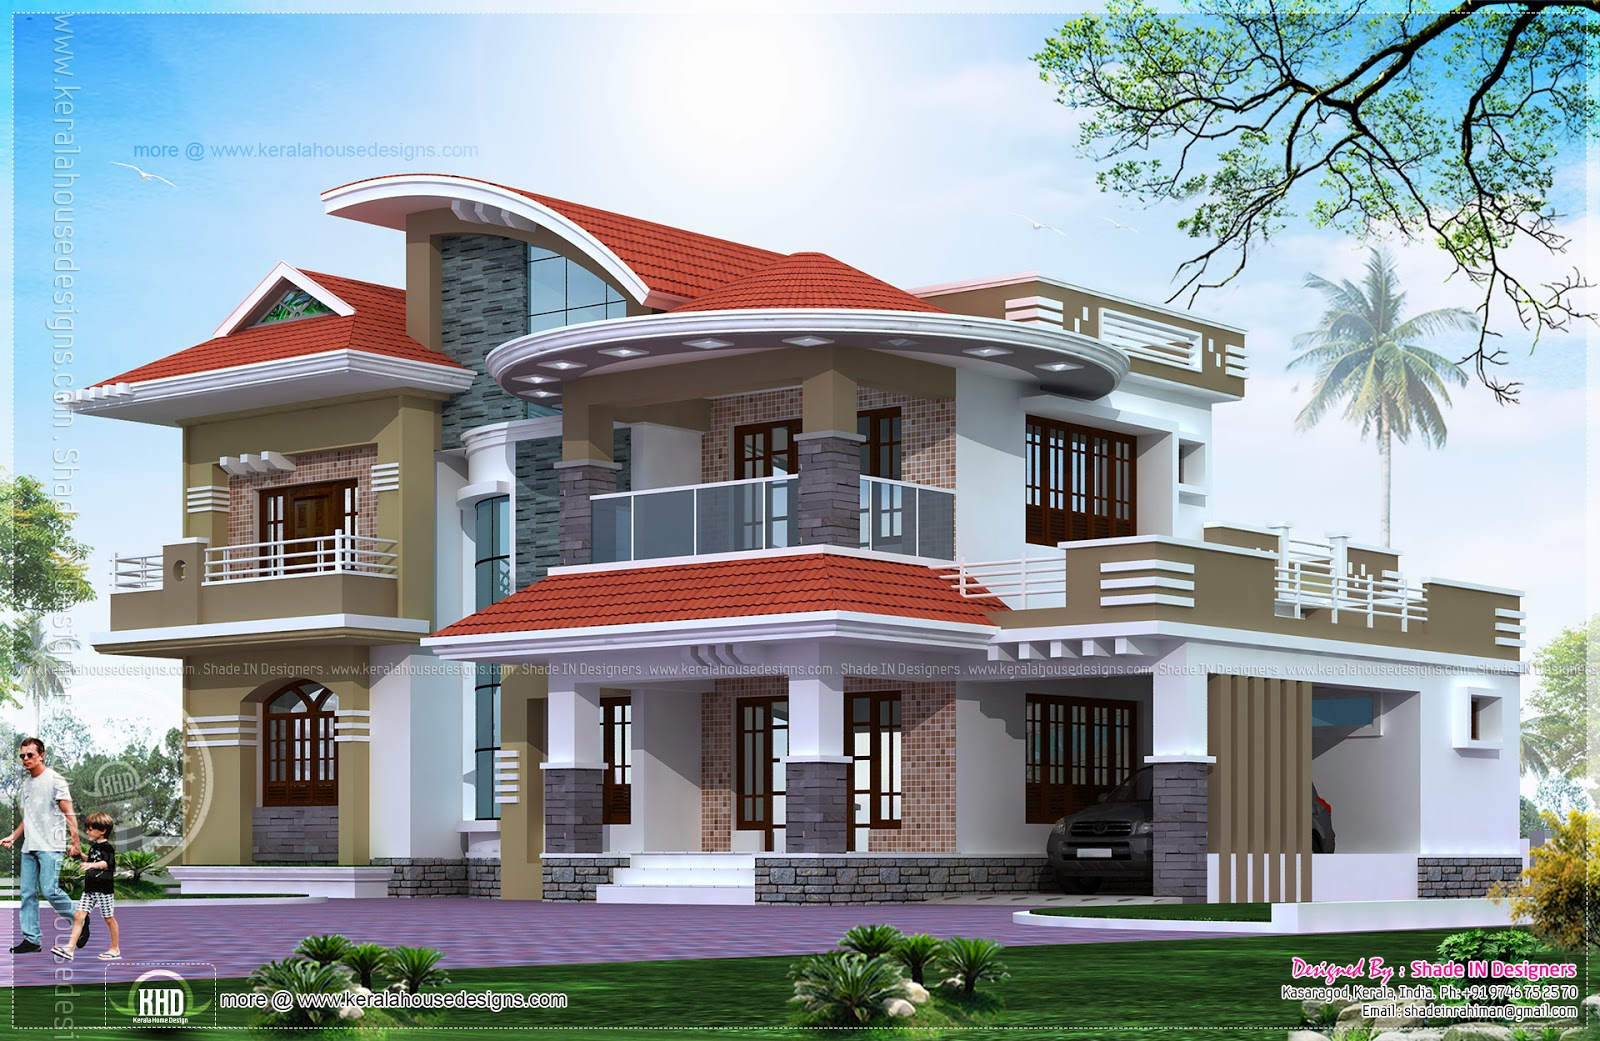 5 bedroom luxury house in kasaragod kerala home design for Luxury house designs and floor plans